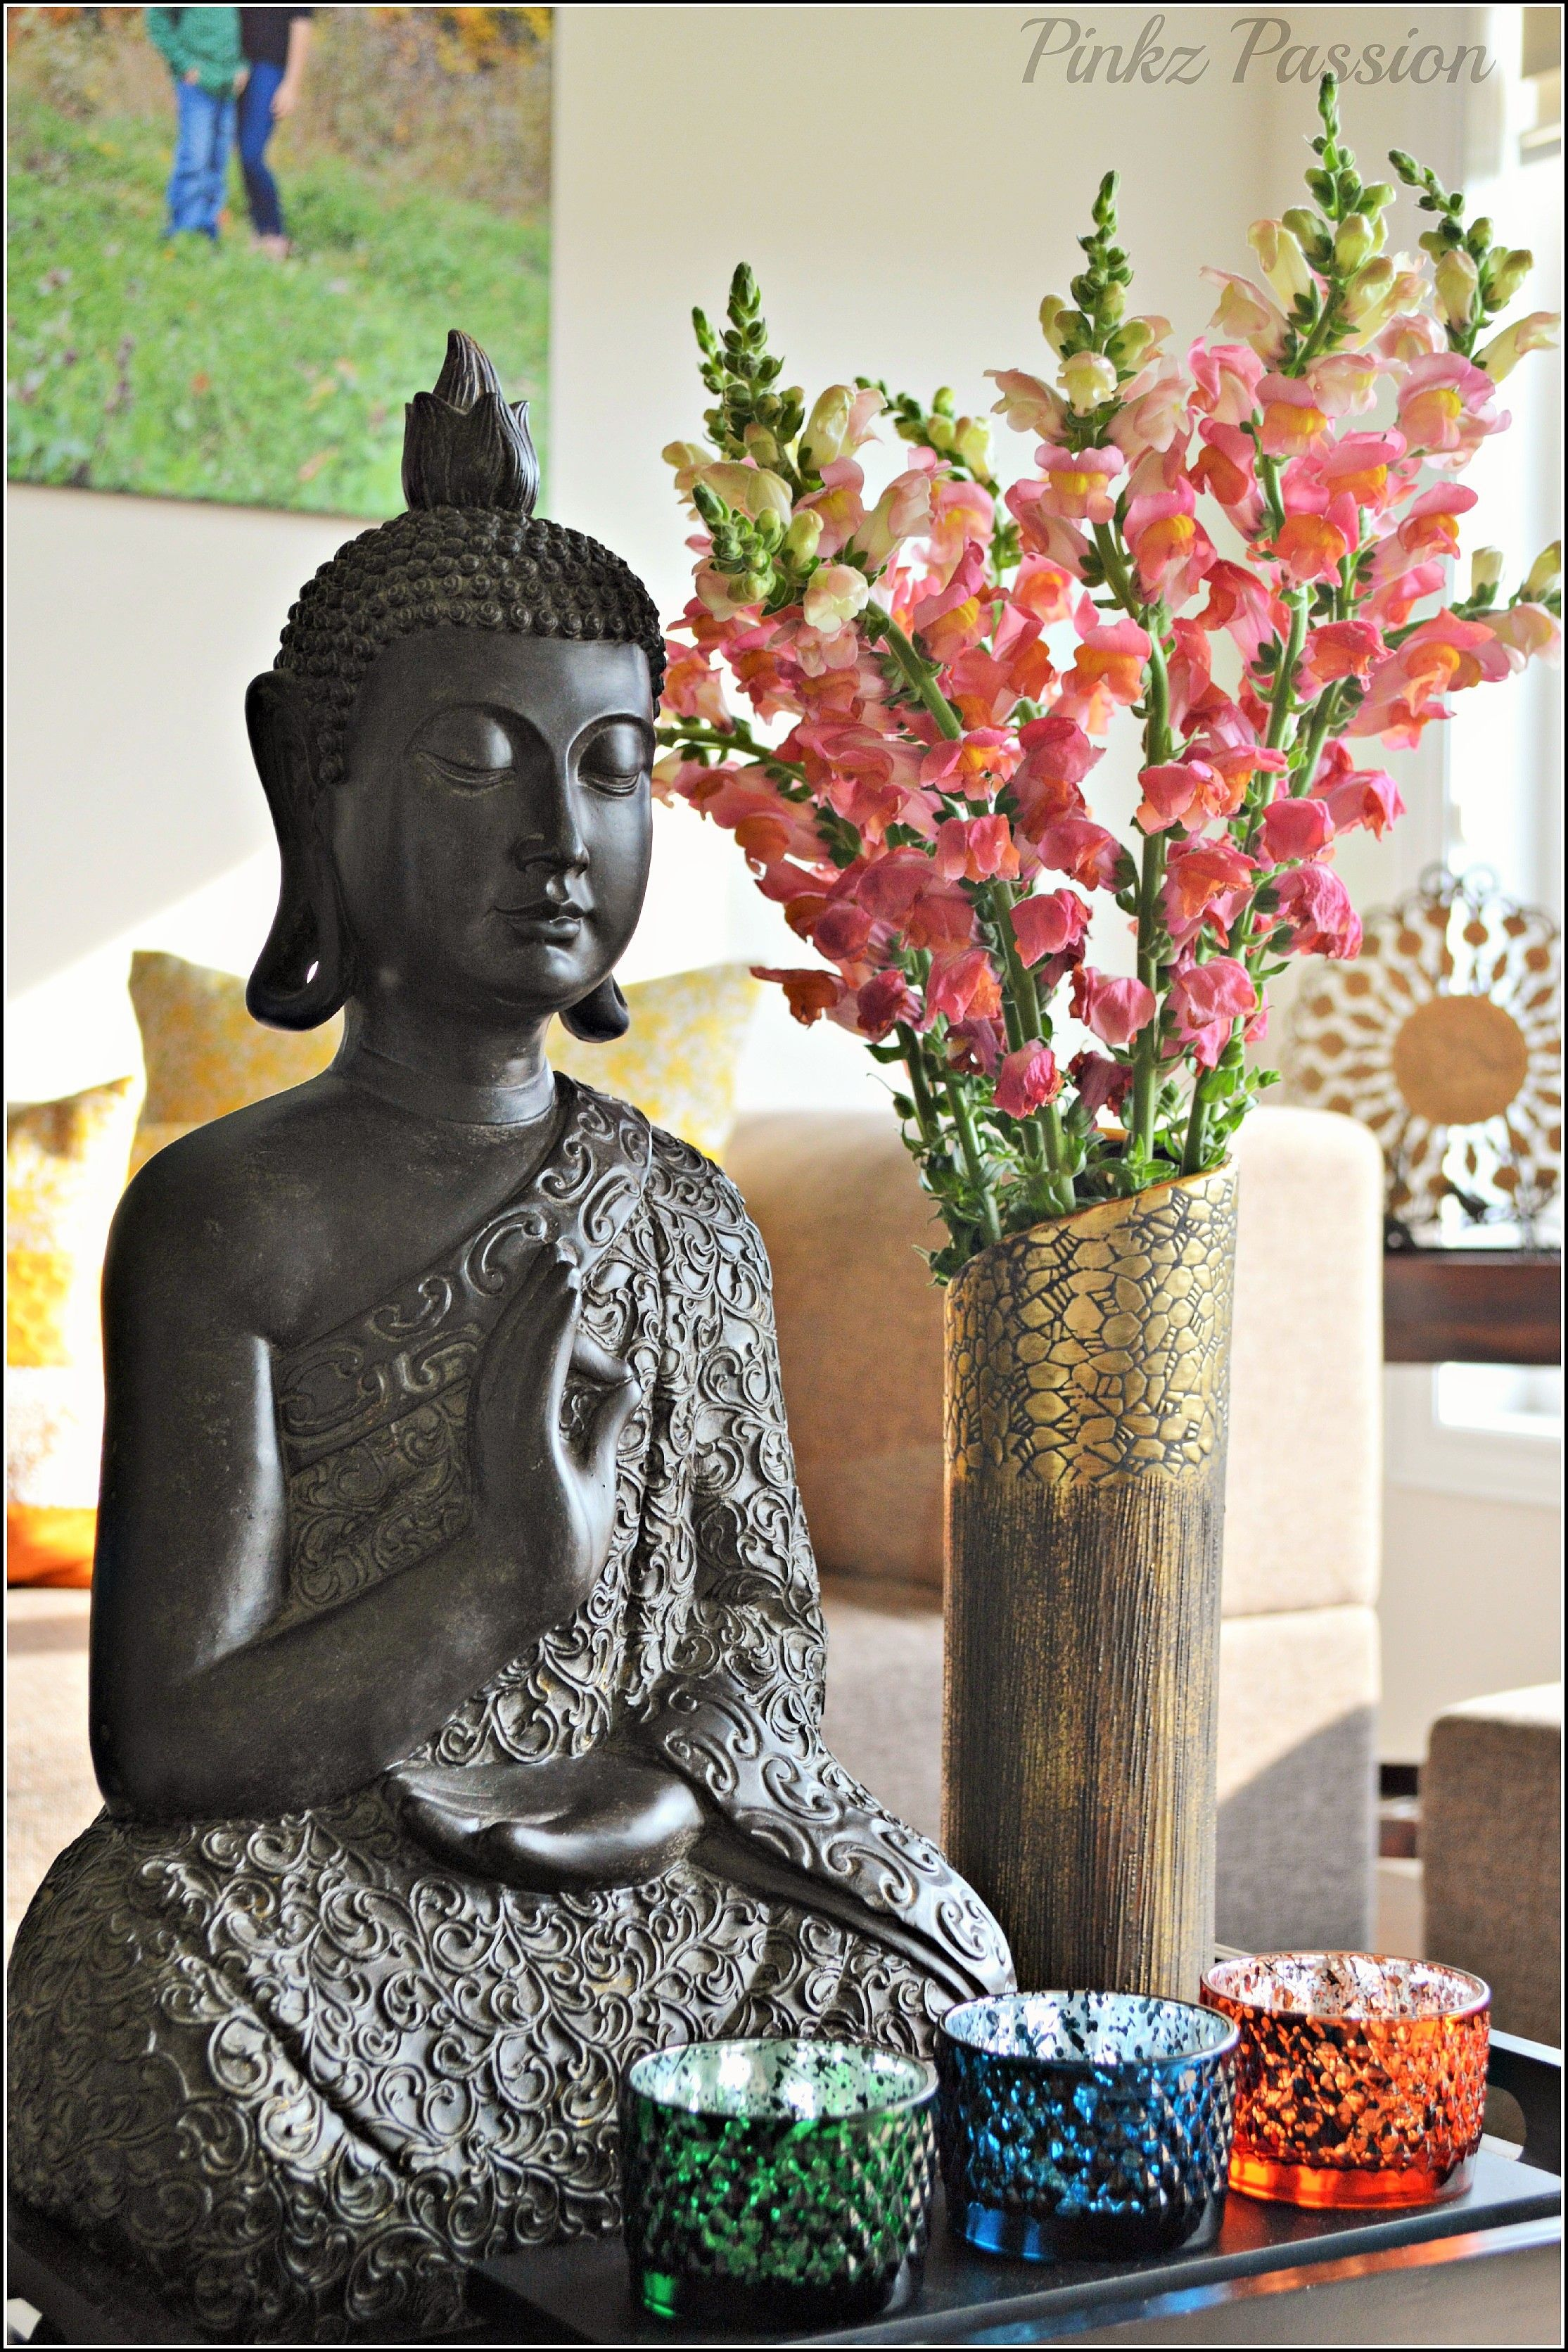 Decoration Asiatique Maison Home Décor Buddha Vignette Snapdragon Flowers Décor